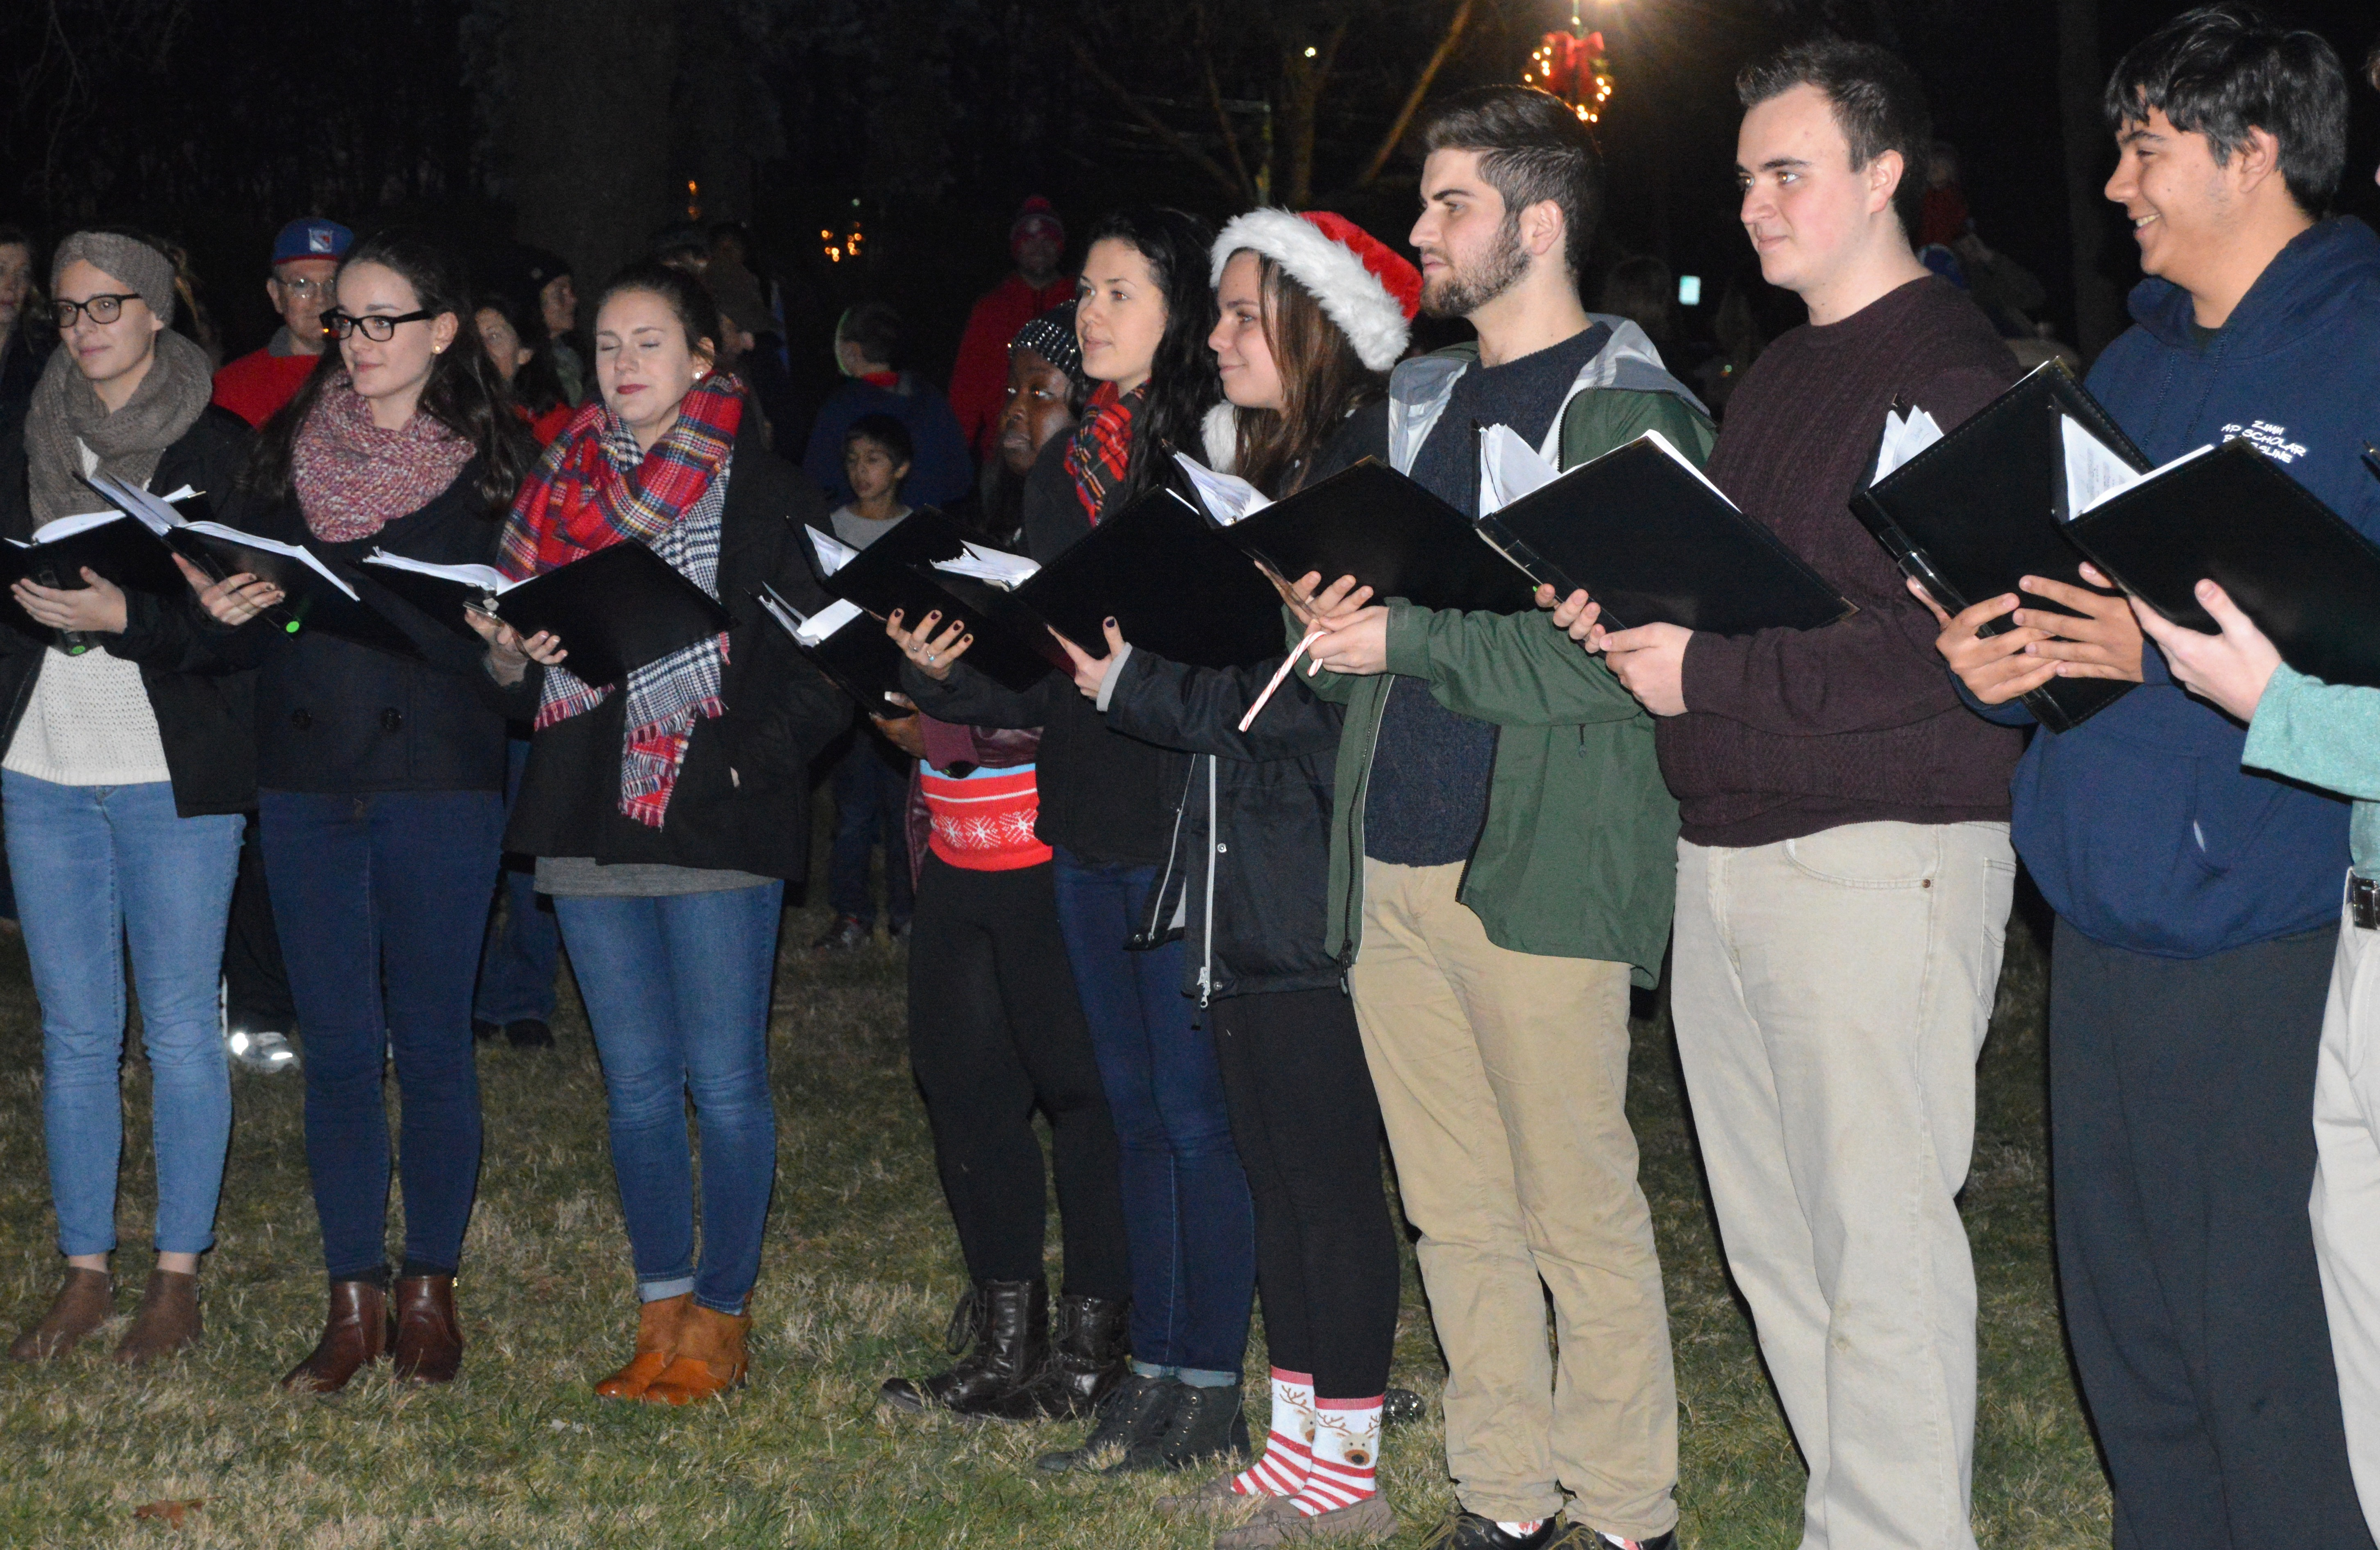 8c3ee1b8d2ea3a4a2e25_Carolers_about_to_perform.JPG